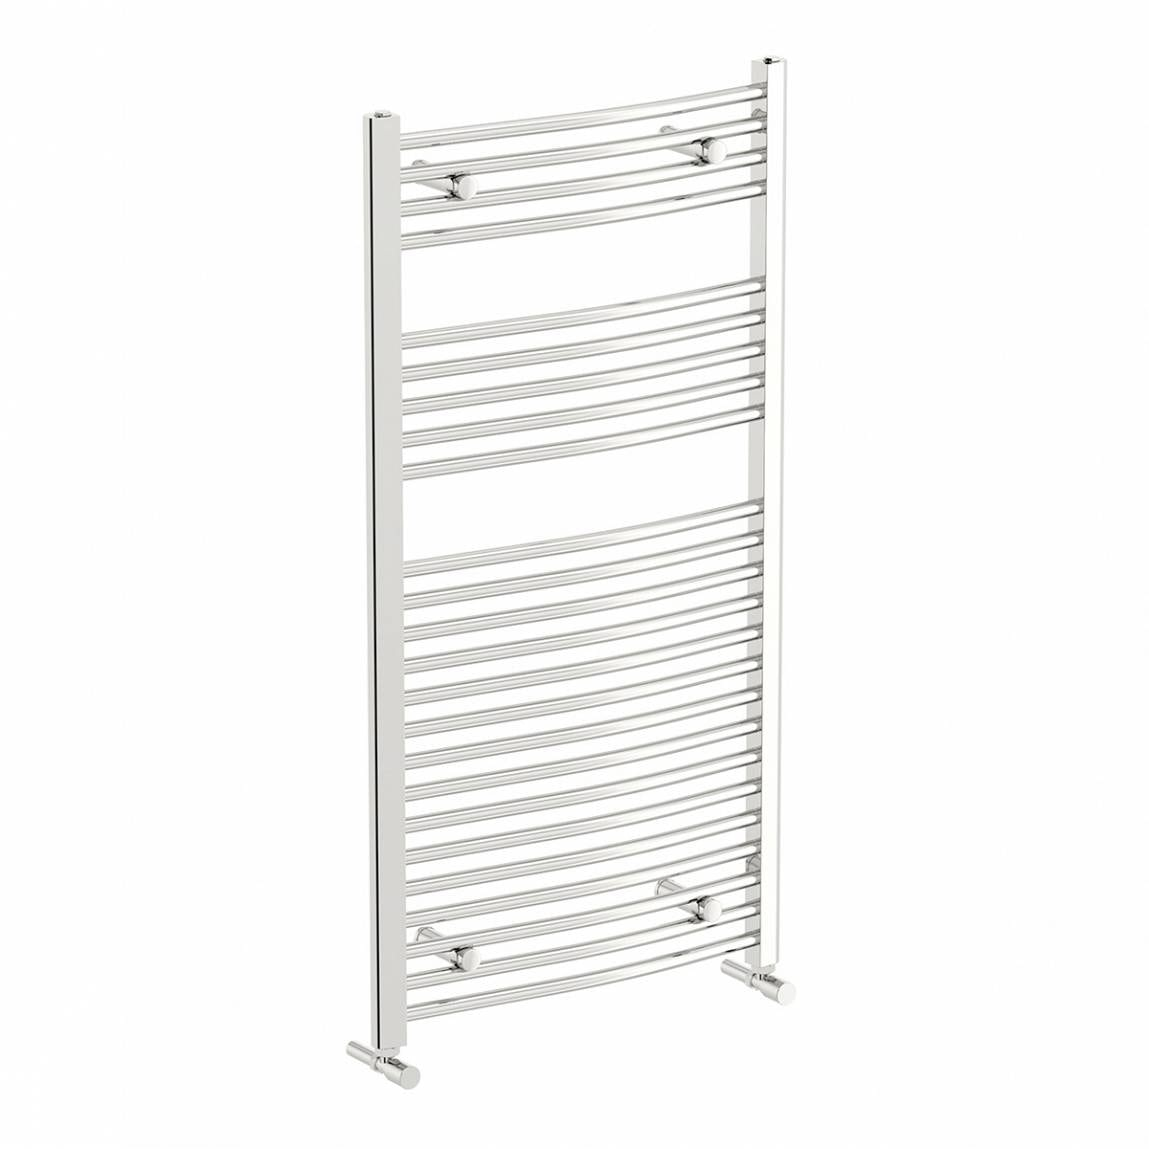 Orchard Curved heated towel rail 1150 x 600